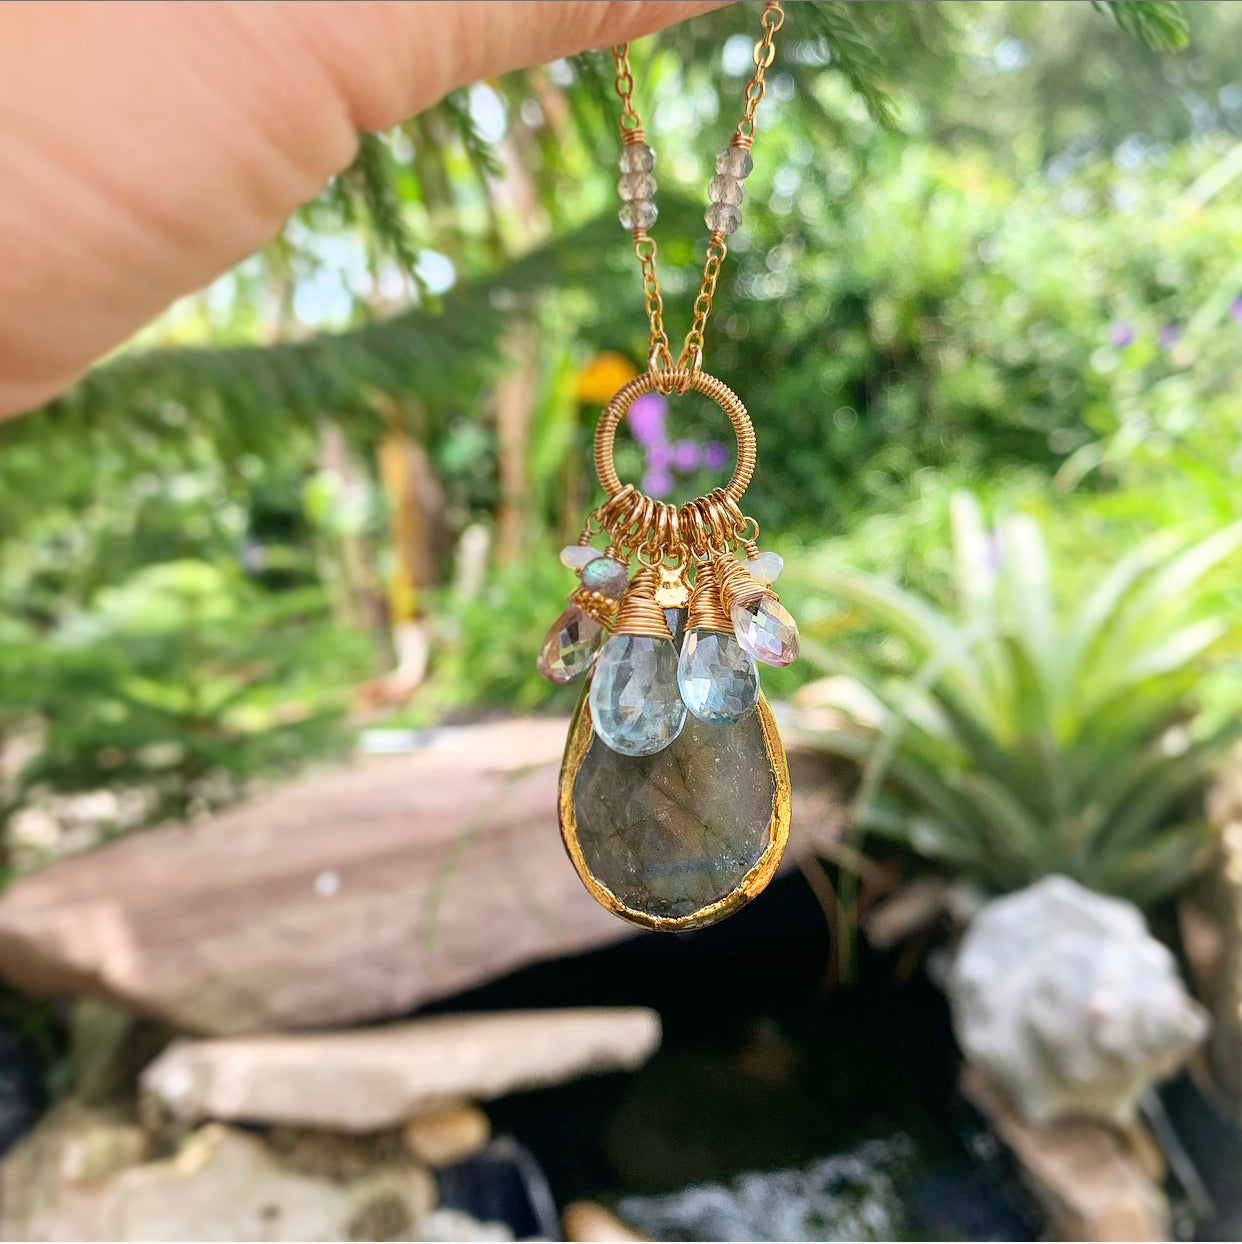 950-One of a Kind Gemstone Drop Necklace